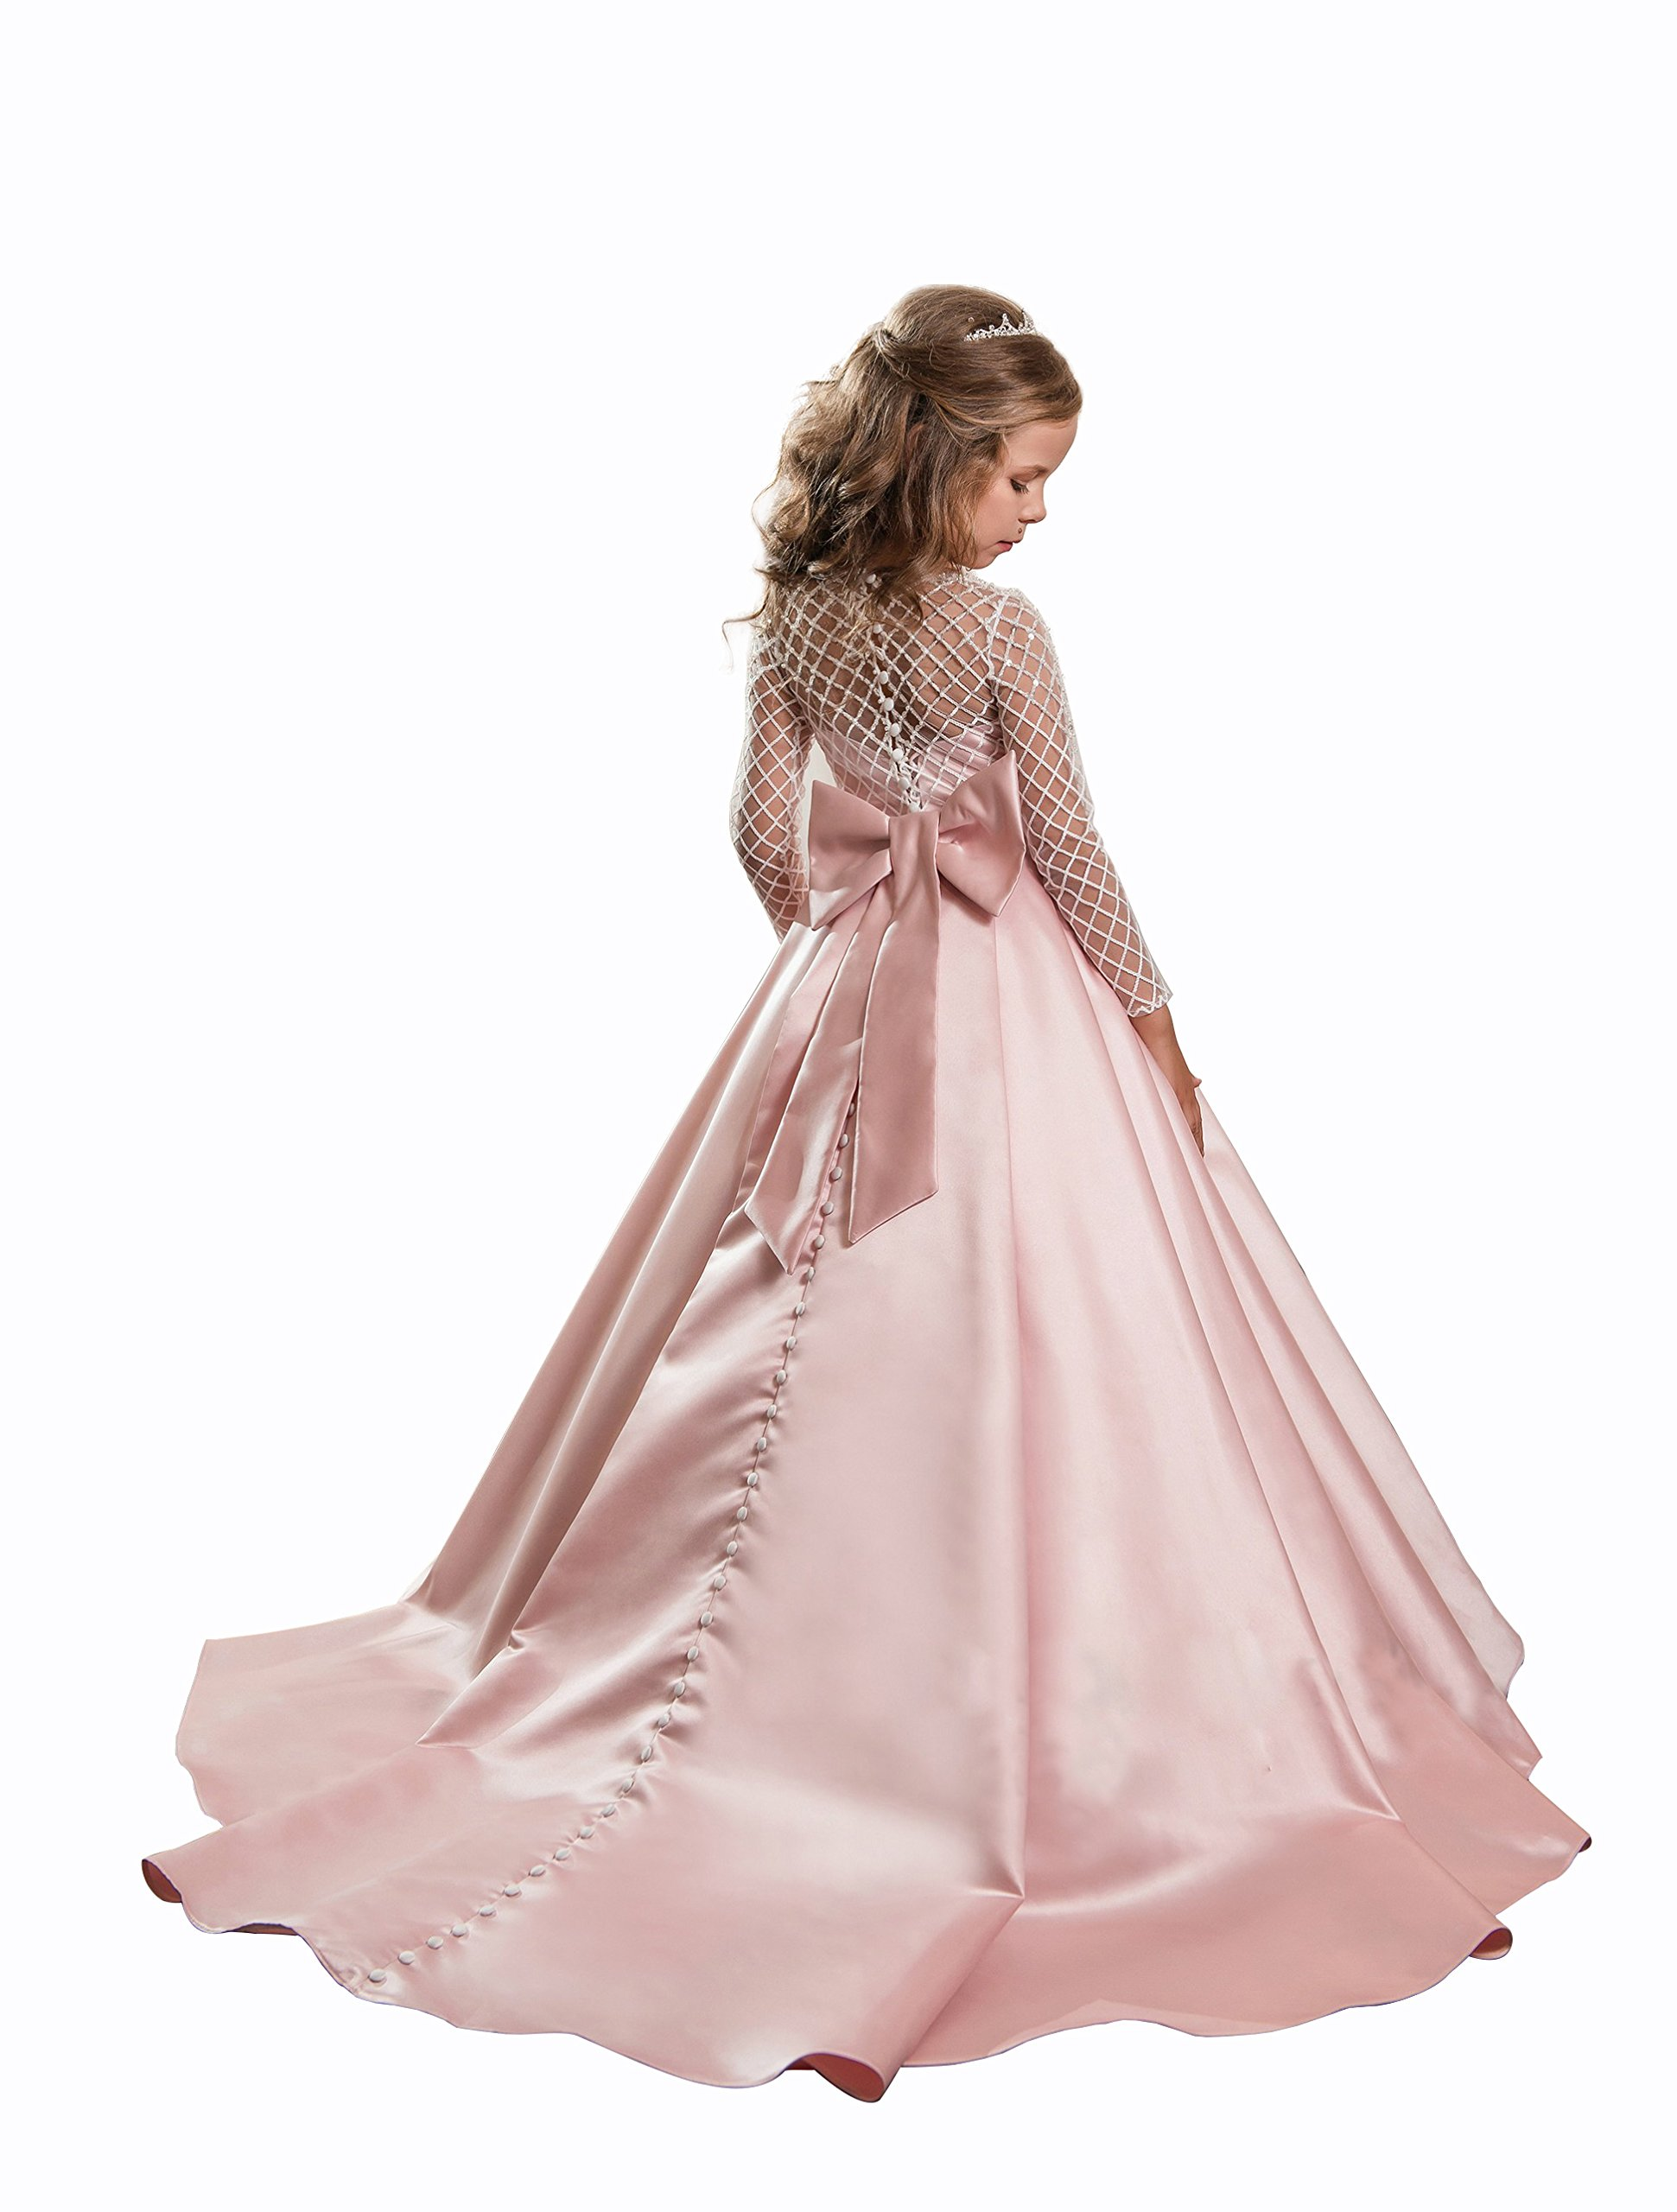 Christmas Flower Girl Dress Floor Length Button Draped Tulle Ball Gowns for Kids Size 8 by Abaowedding (Image #2)